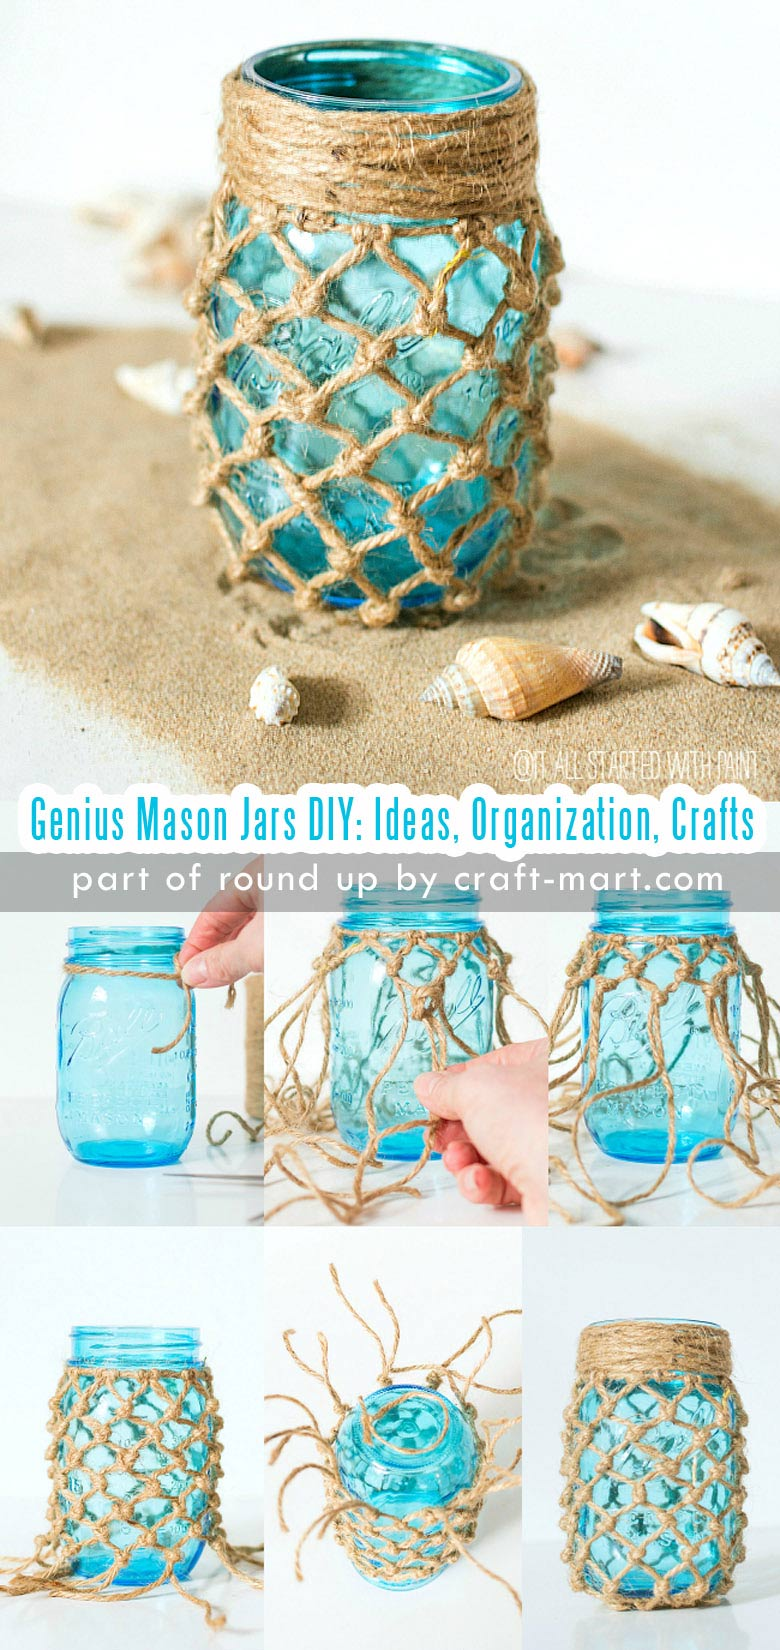 Genius Mason Jars DIY: Ideas, Organization, Crafts collection by craft-mart.com DIY Coastal Theme Fishnet Mason Jar #masonjars #masonjarsdiy #diyprojects #masonjarsdecor #masonjarscrafts